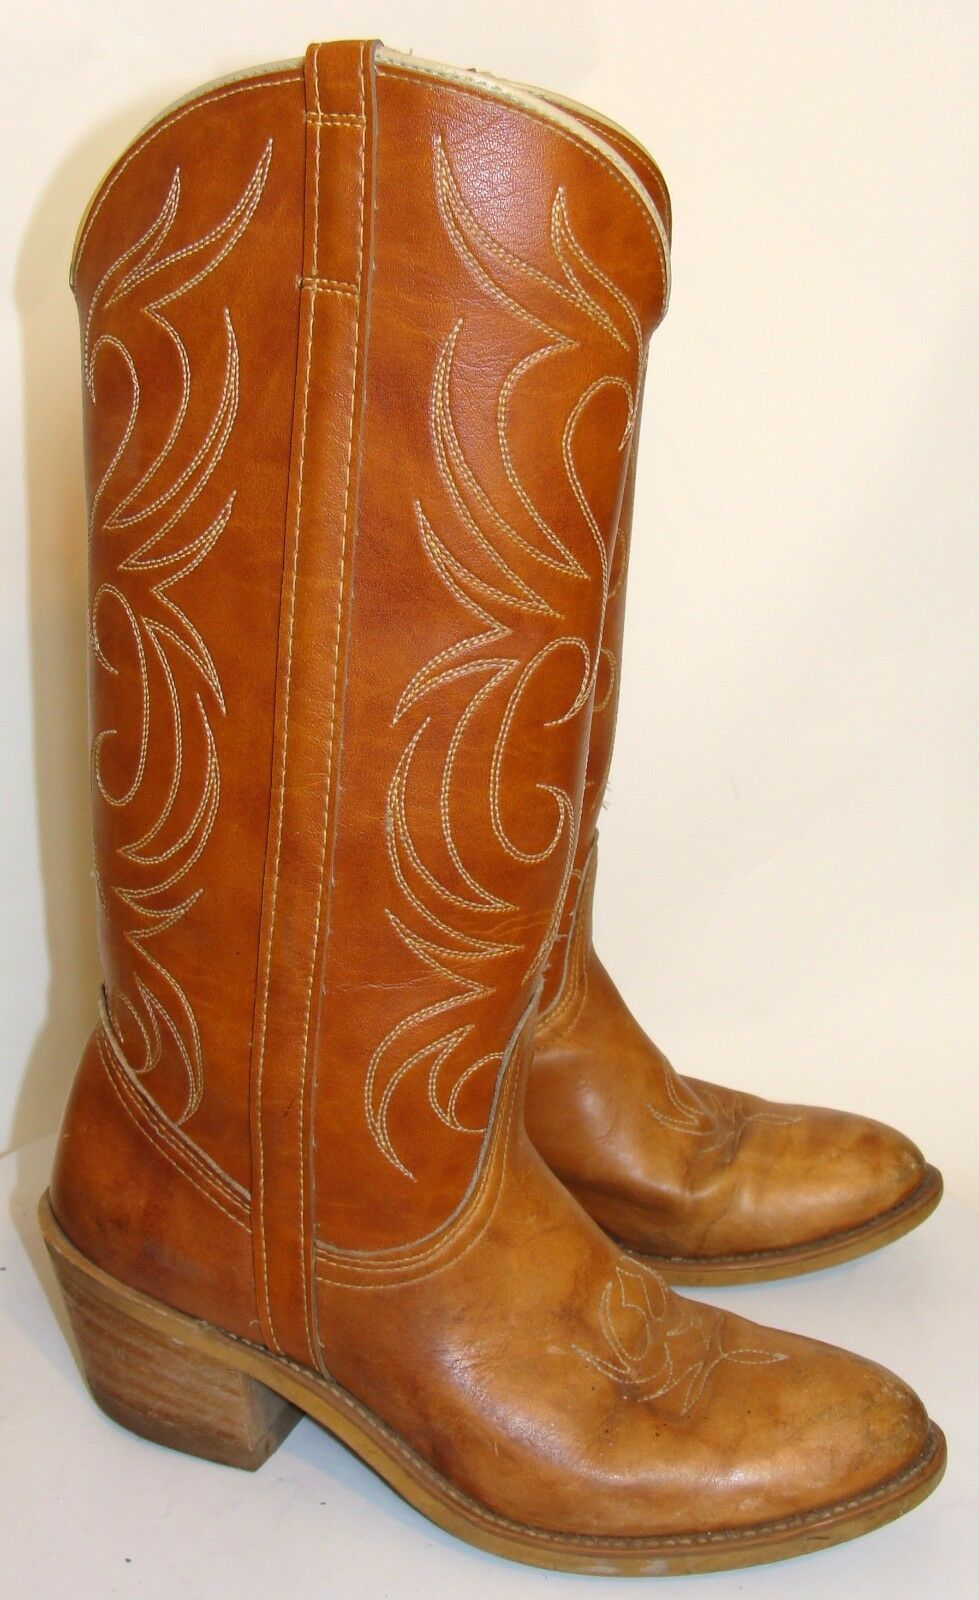 DINGO WOMENS TALL TAN LEATHER COWBOY BOOTS SIZE 6.5M  C111